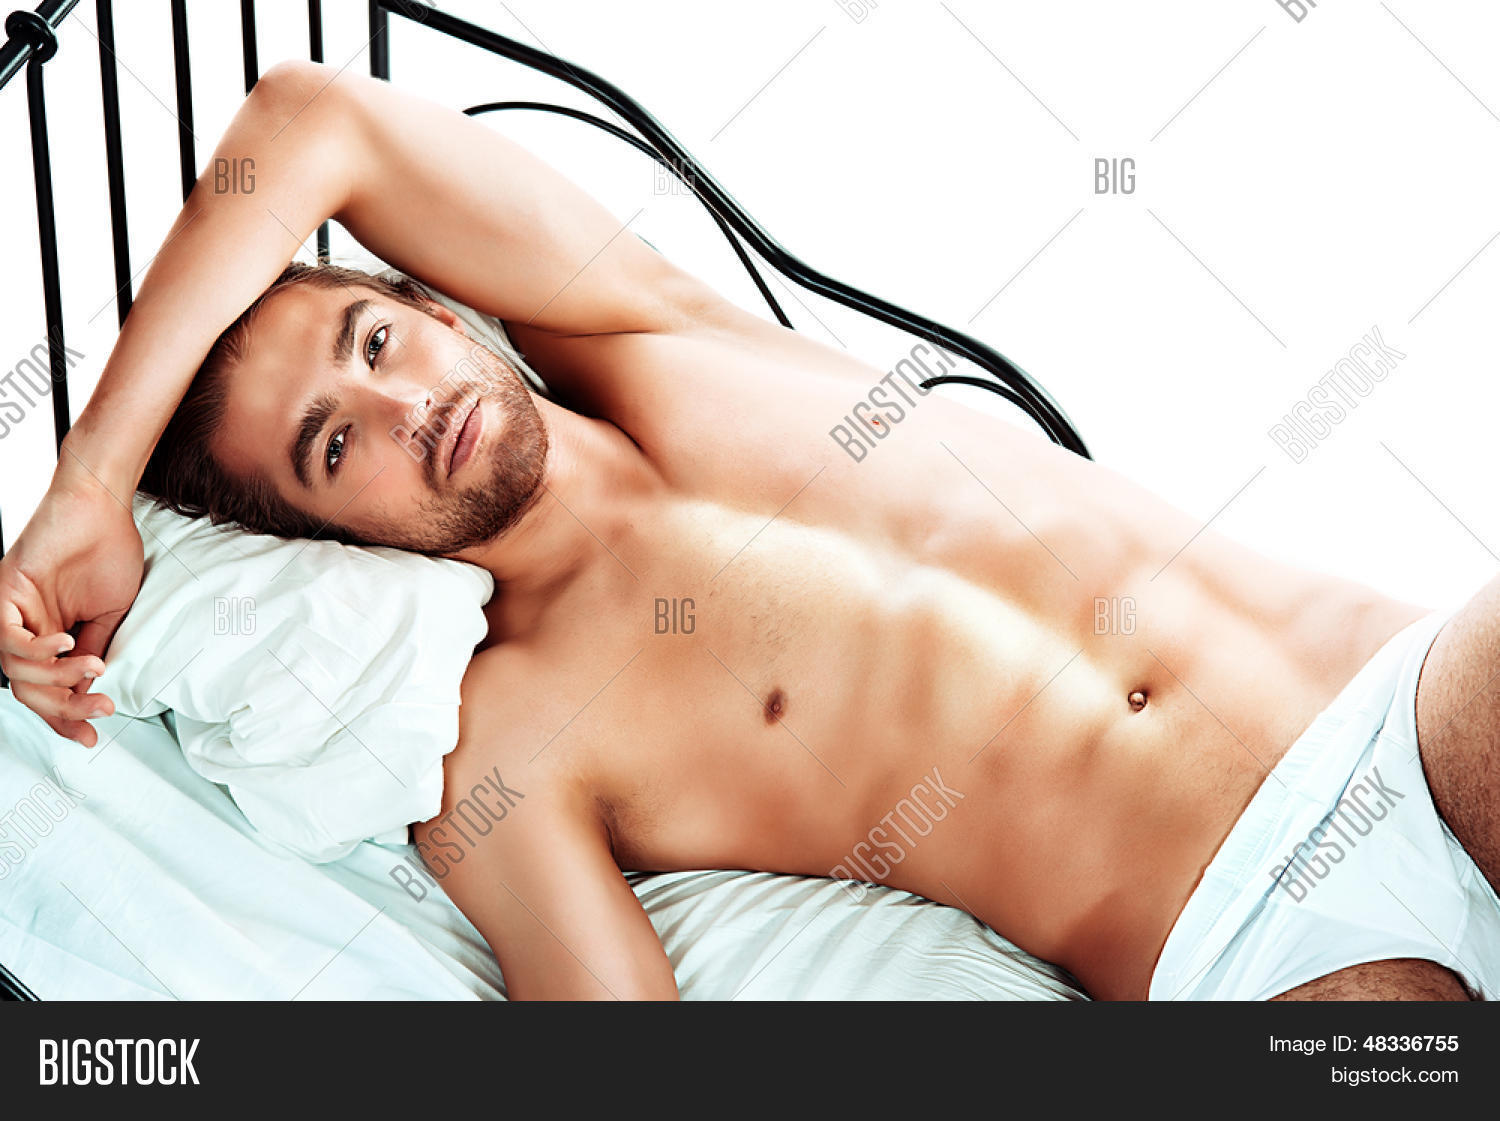 Man lying nude in bed strip